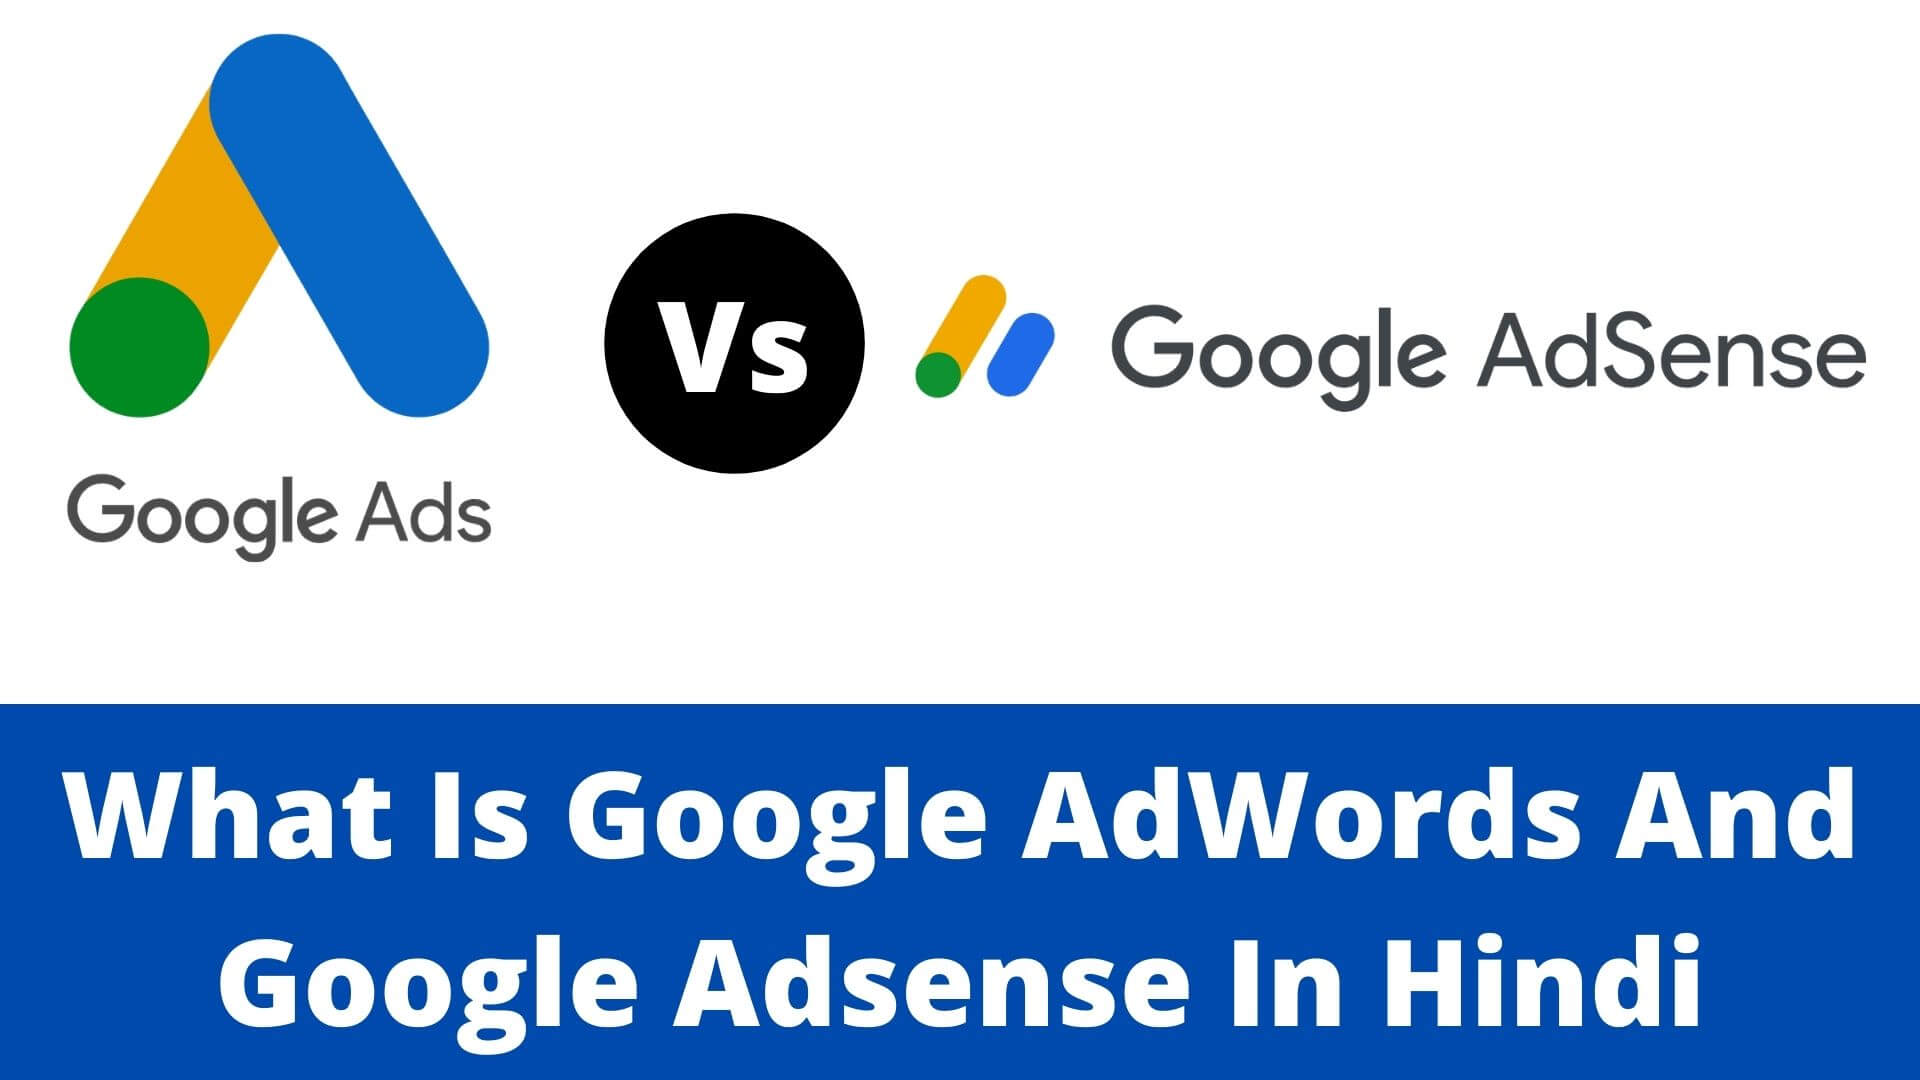 What Is Google AdWords And Google Adsense In Hindi